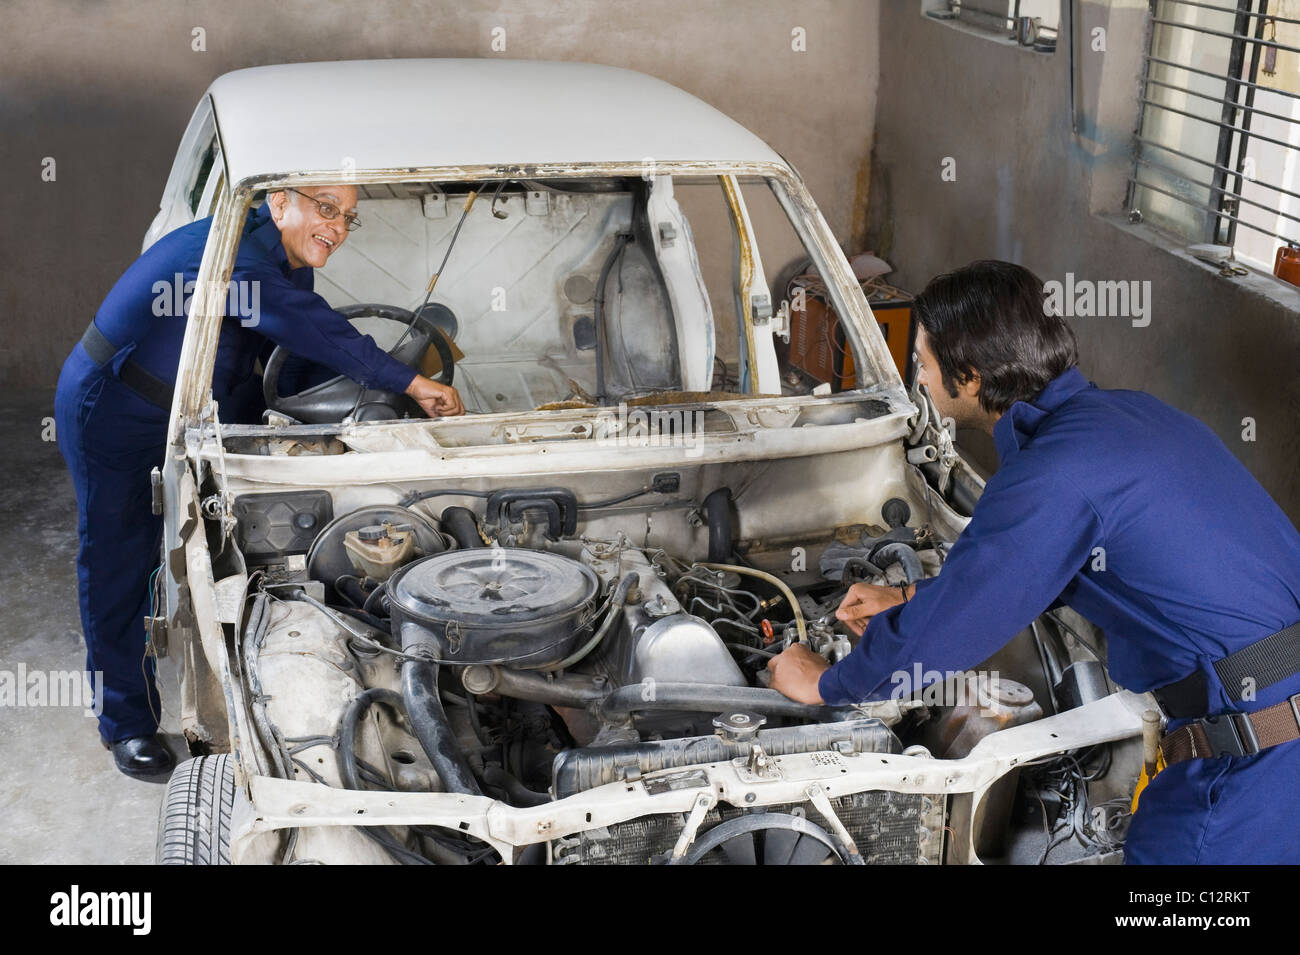 Auto mechanic with an apprentice repairing a car in a garage - Stock Image